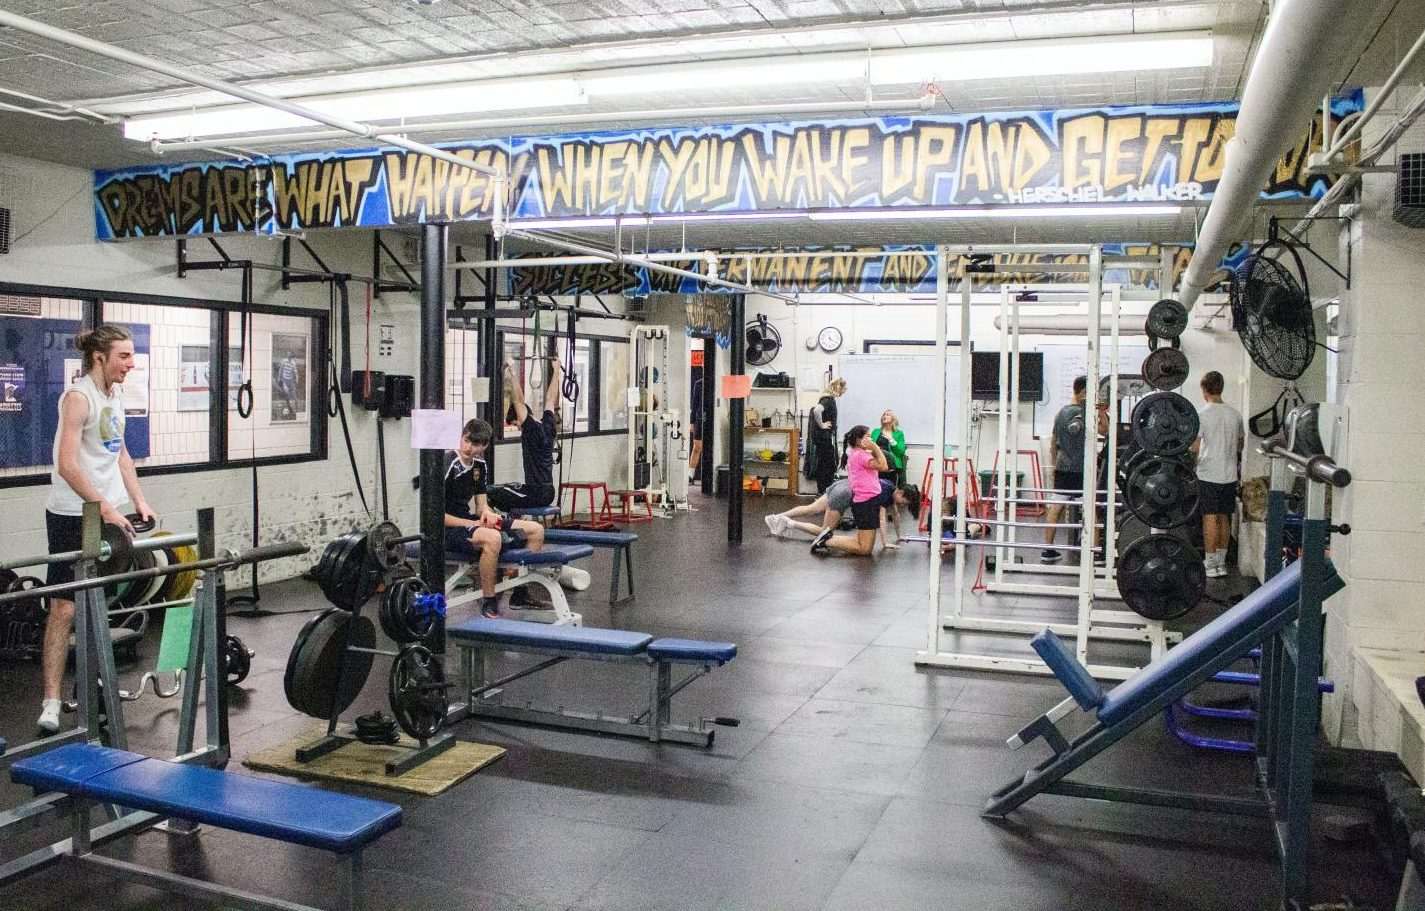 The weight room is filled with mostly male-identifying students with a few female-identifying students after school. This gender imbalance becomes more severe when sports do not use the weight room for conditioning.